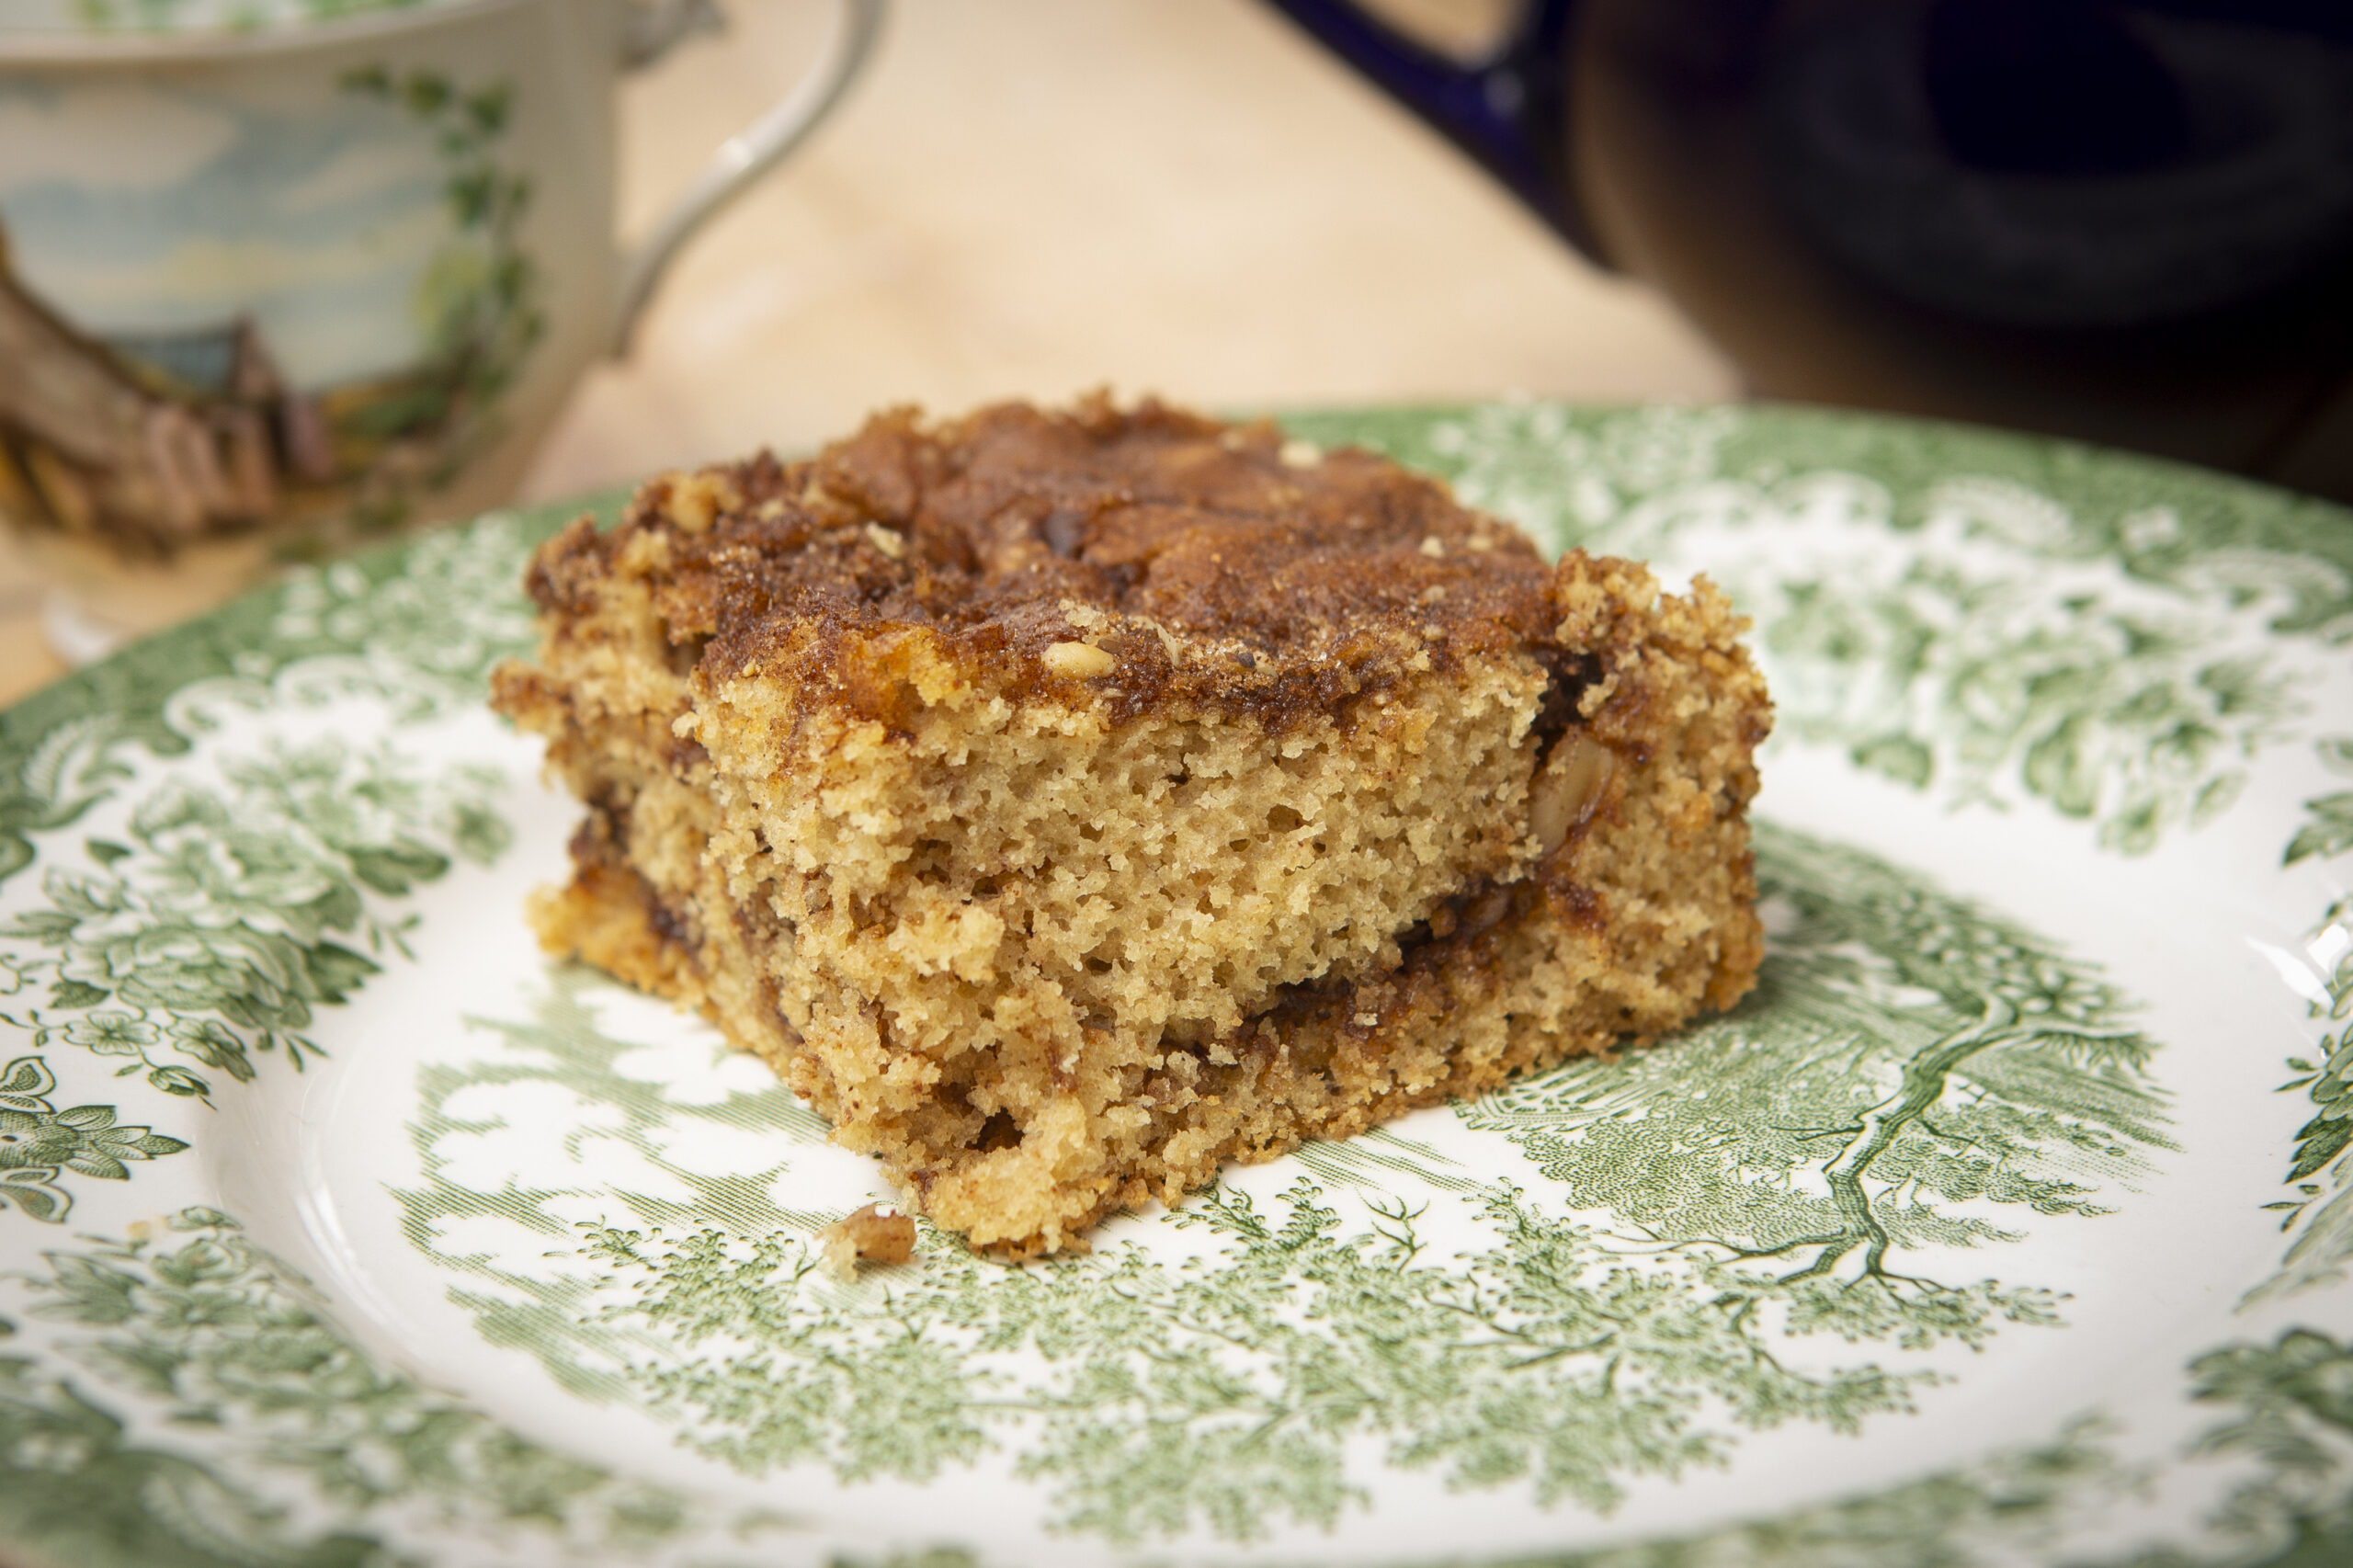 Gluten-free cinnamon crumb coffee cake on a green patterned plate.